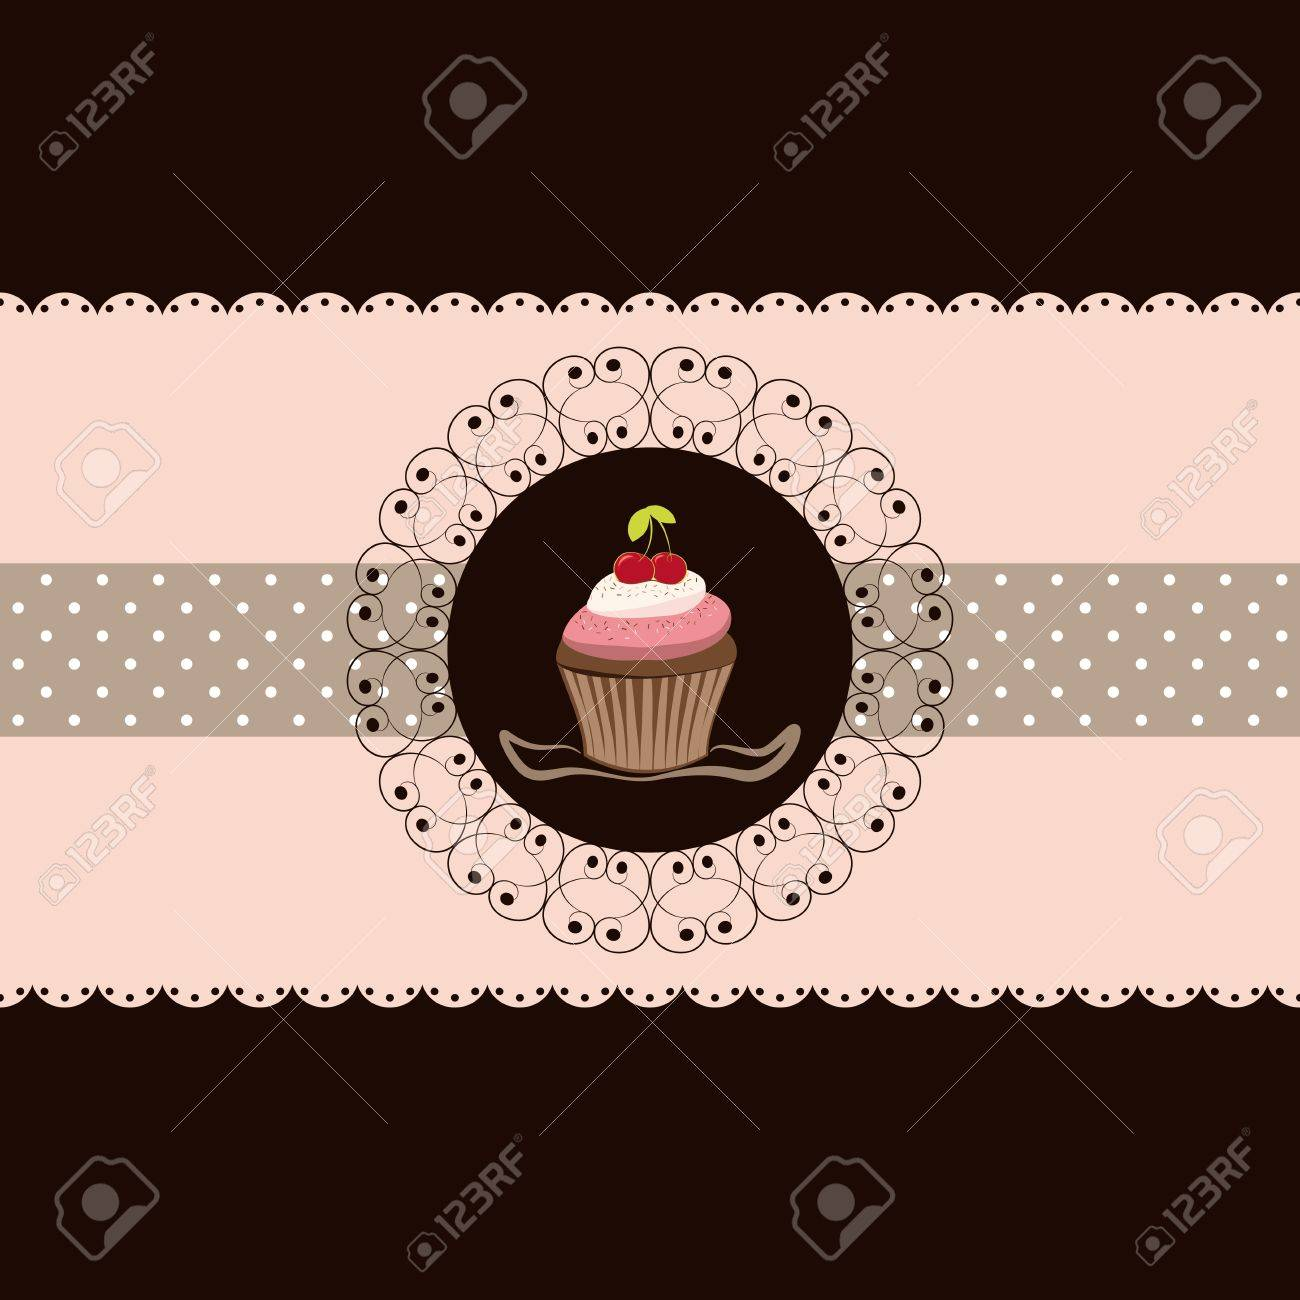 cherry cupcake invitation card pink brown background royalty free